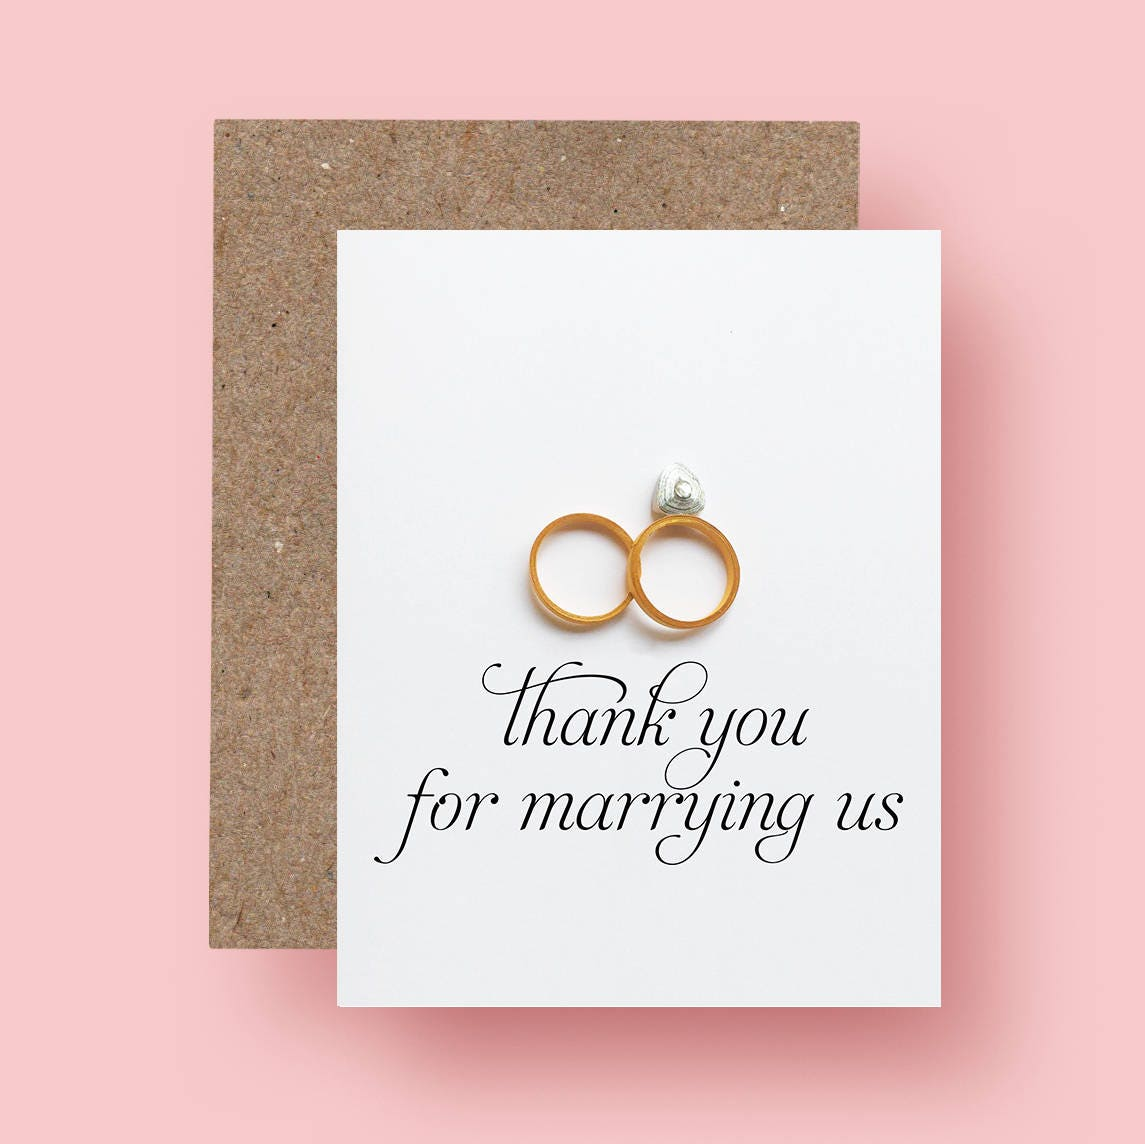 Wedding officiant thank you card thank you for marrying us zoom magicingreecefo Images